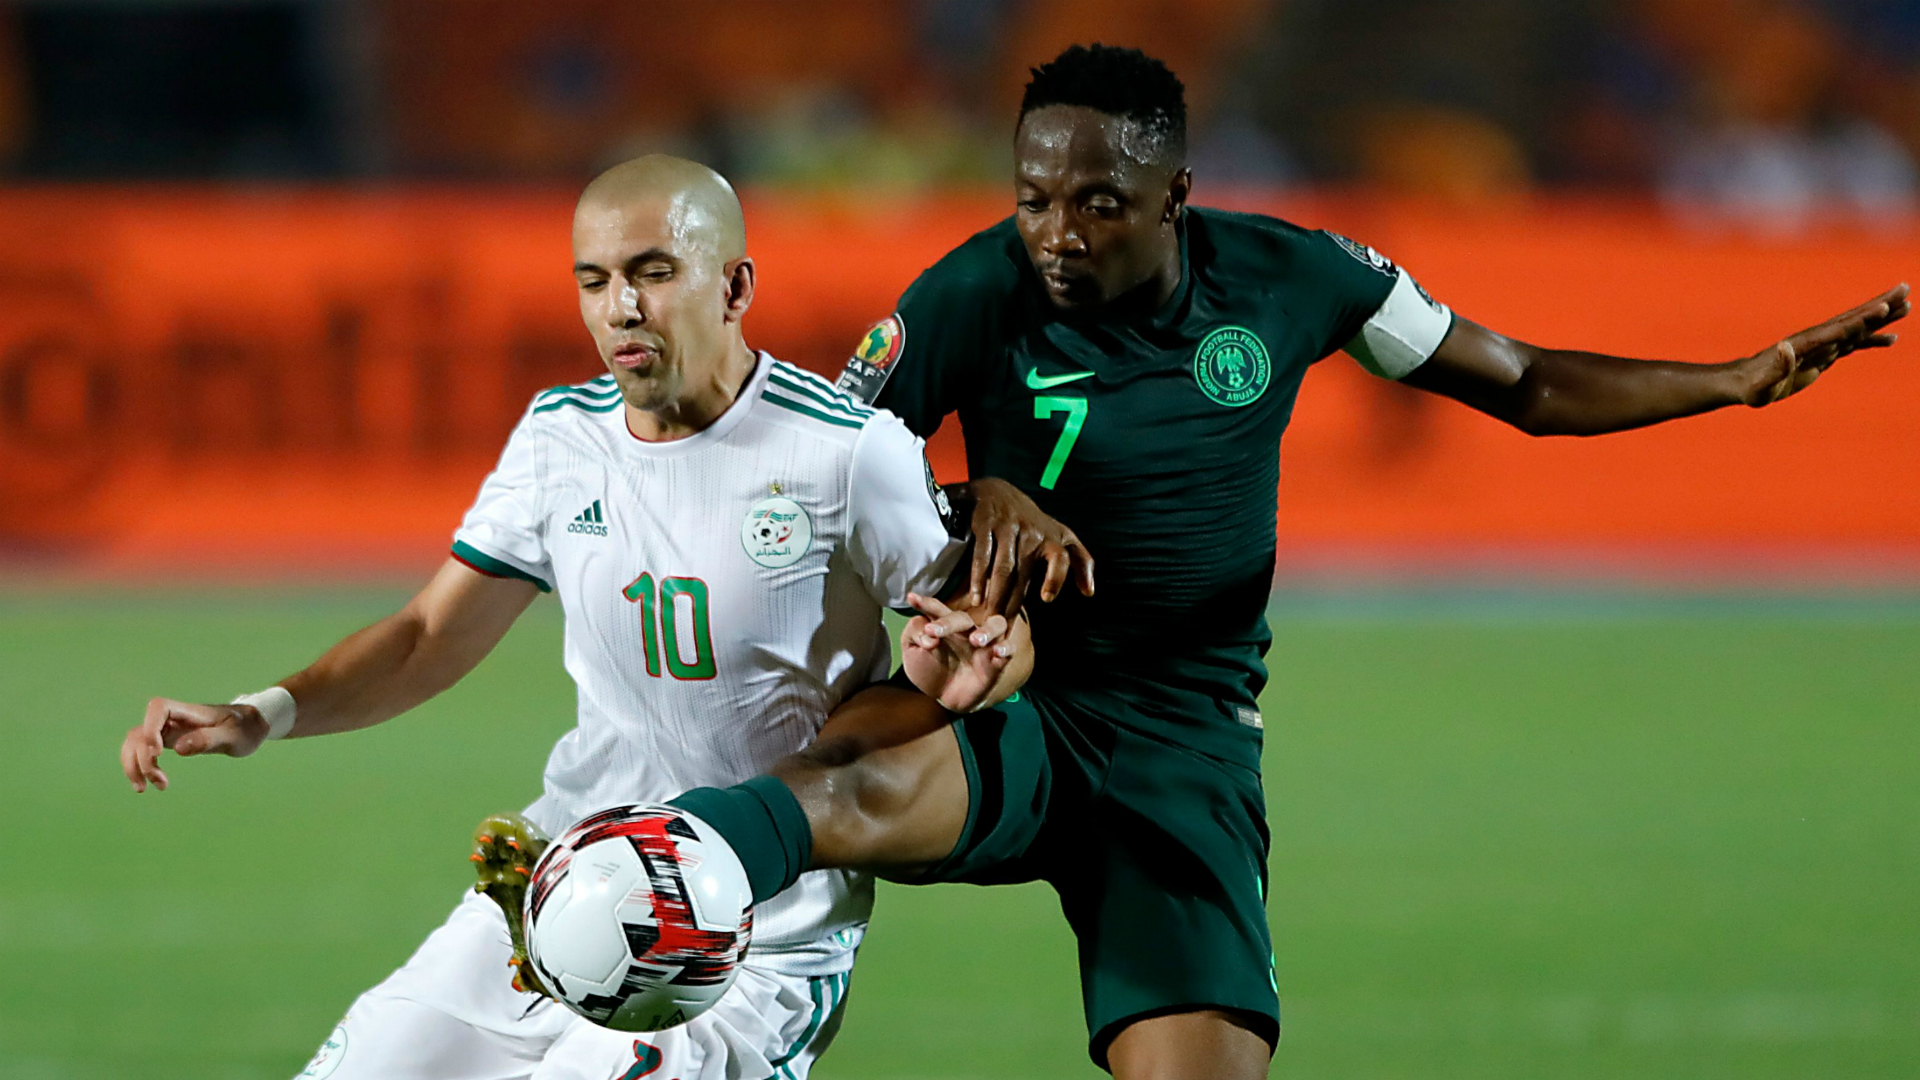 Afcon 2019: 'We need to create more chances' - Mutiu Adepoju charges Nigeria ahead of Tunisia clash